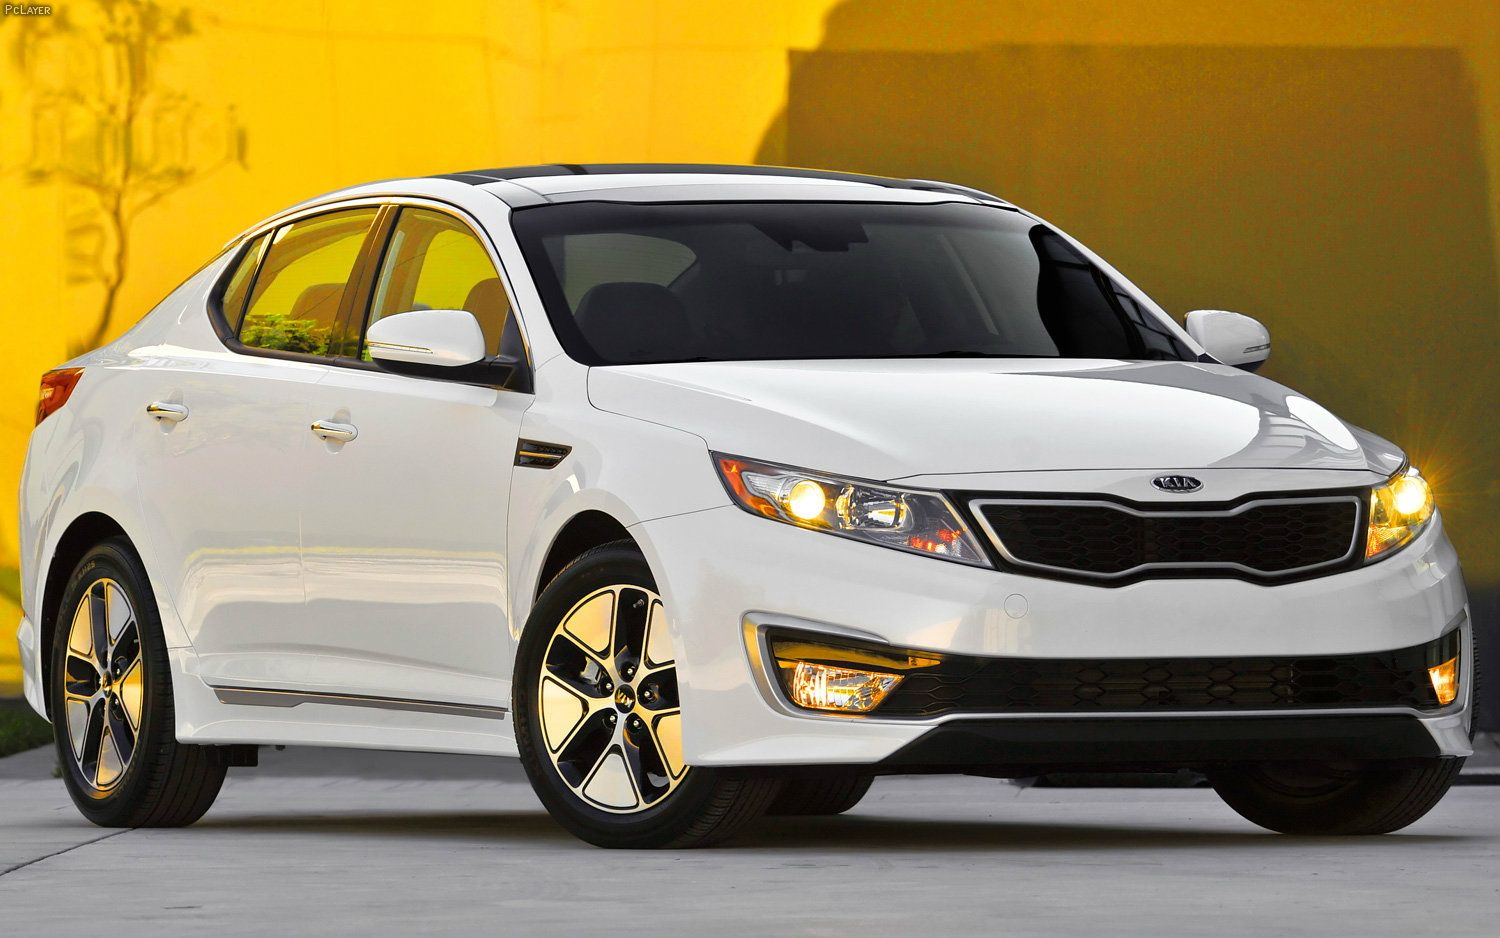 kia cars kia optima hybrid car 2013 2014 price in pakistan vehicles cars pinterest kia. Black Bedroom Furniture Sets. Home Design Ideas